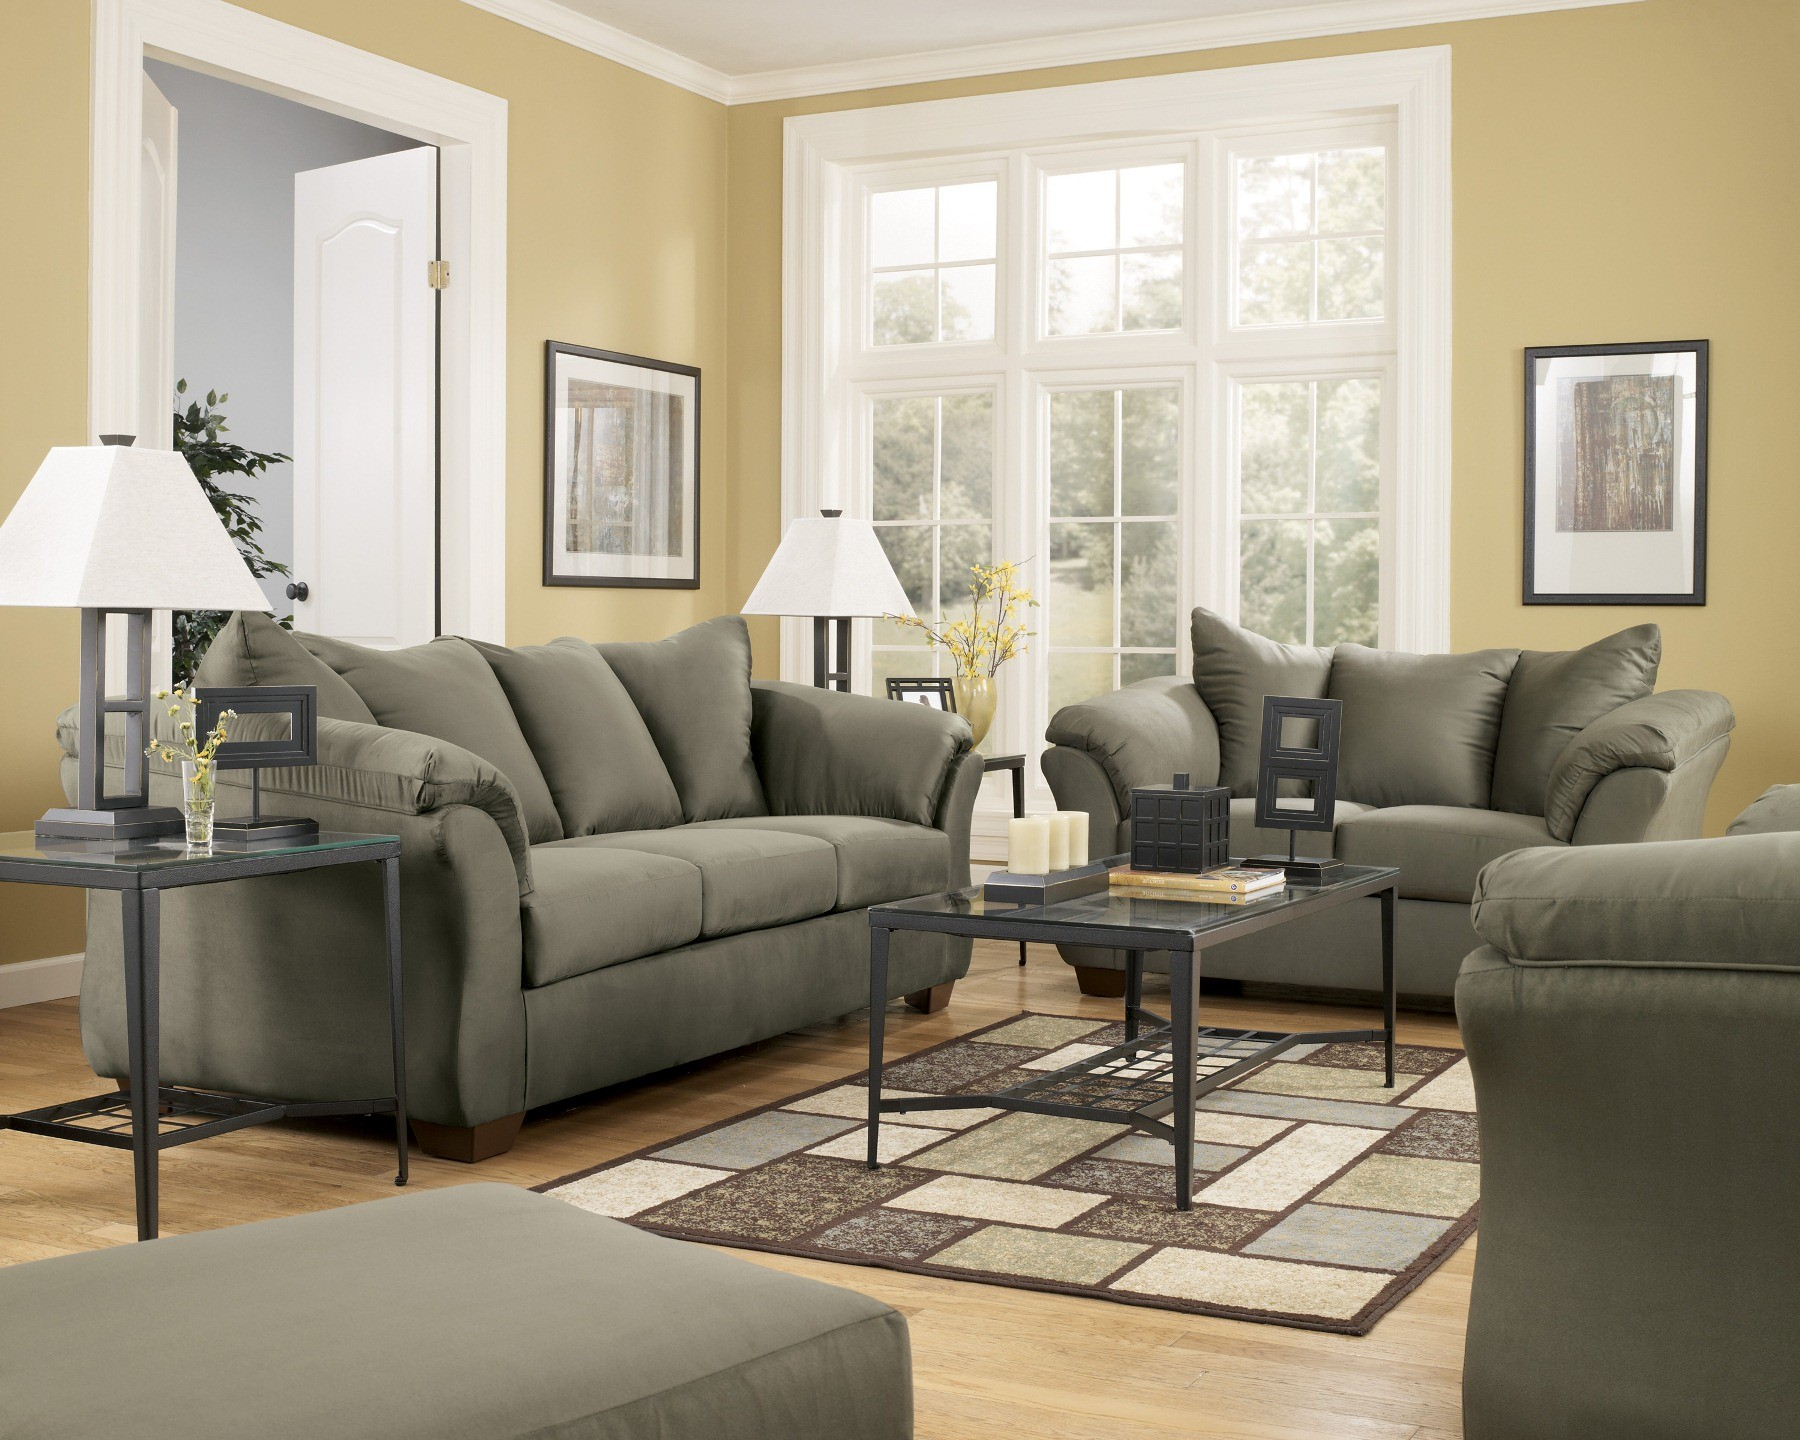 ashley furniture darcy sofa sleeper selig z sage full from 7500336